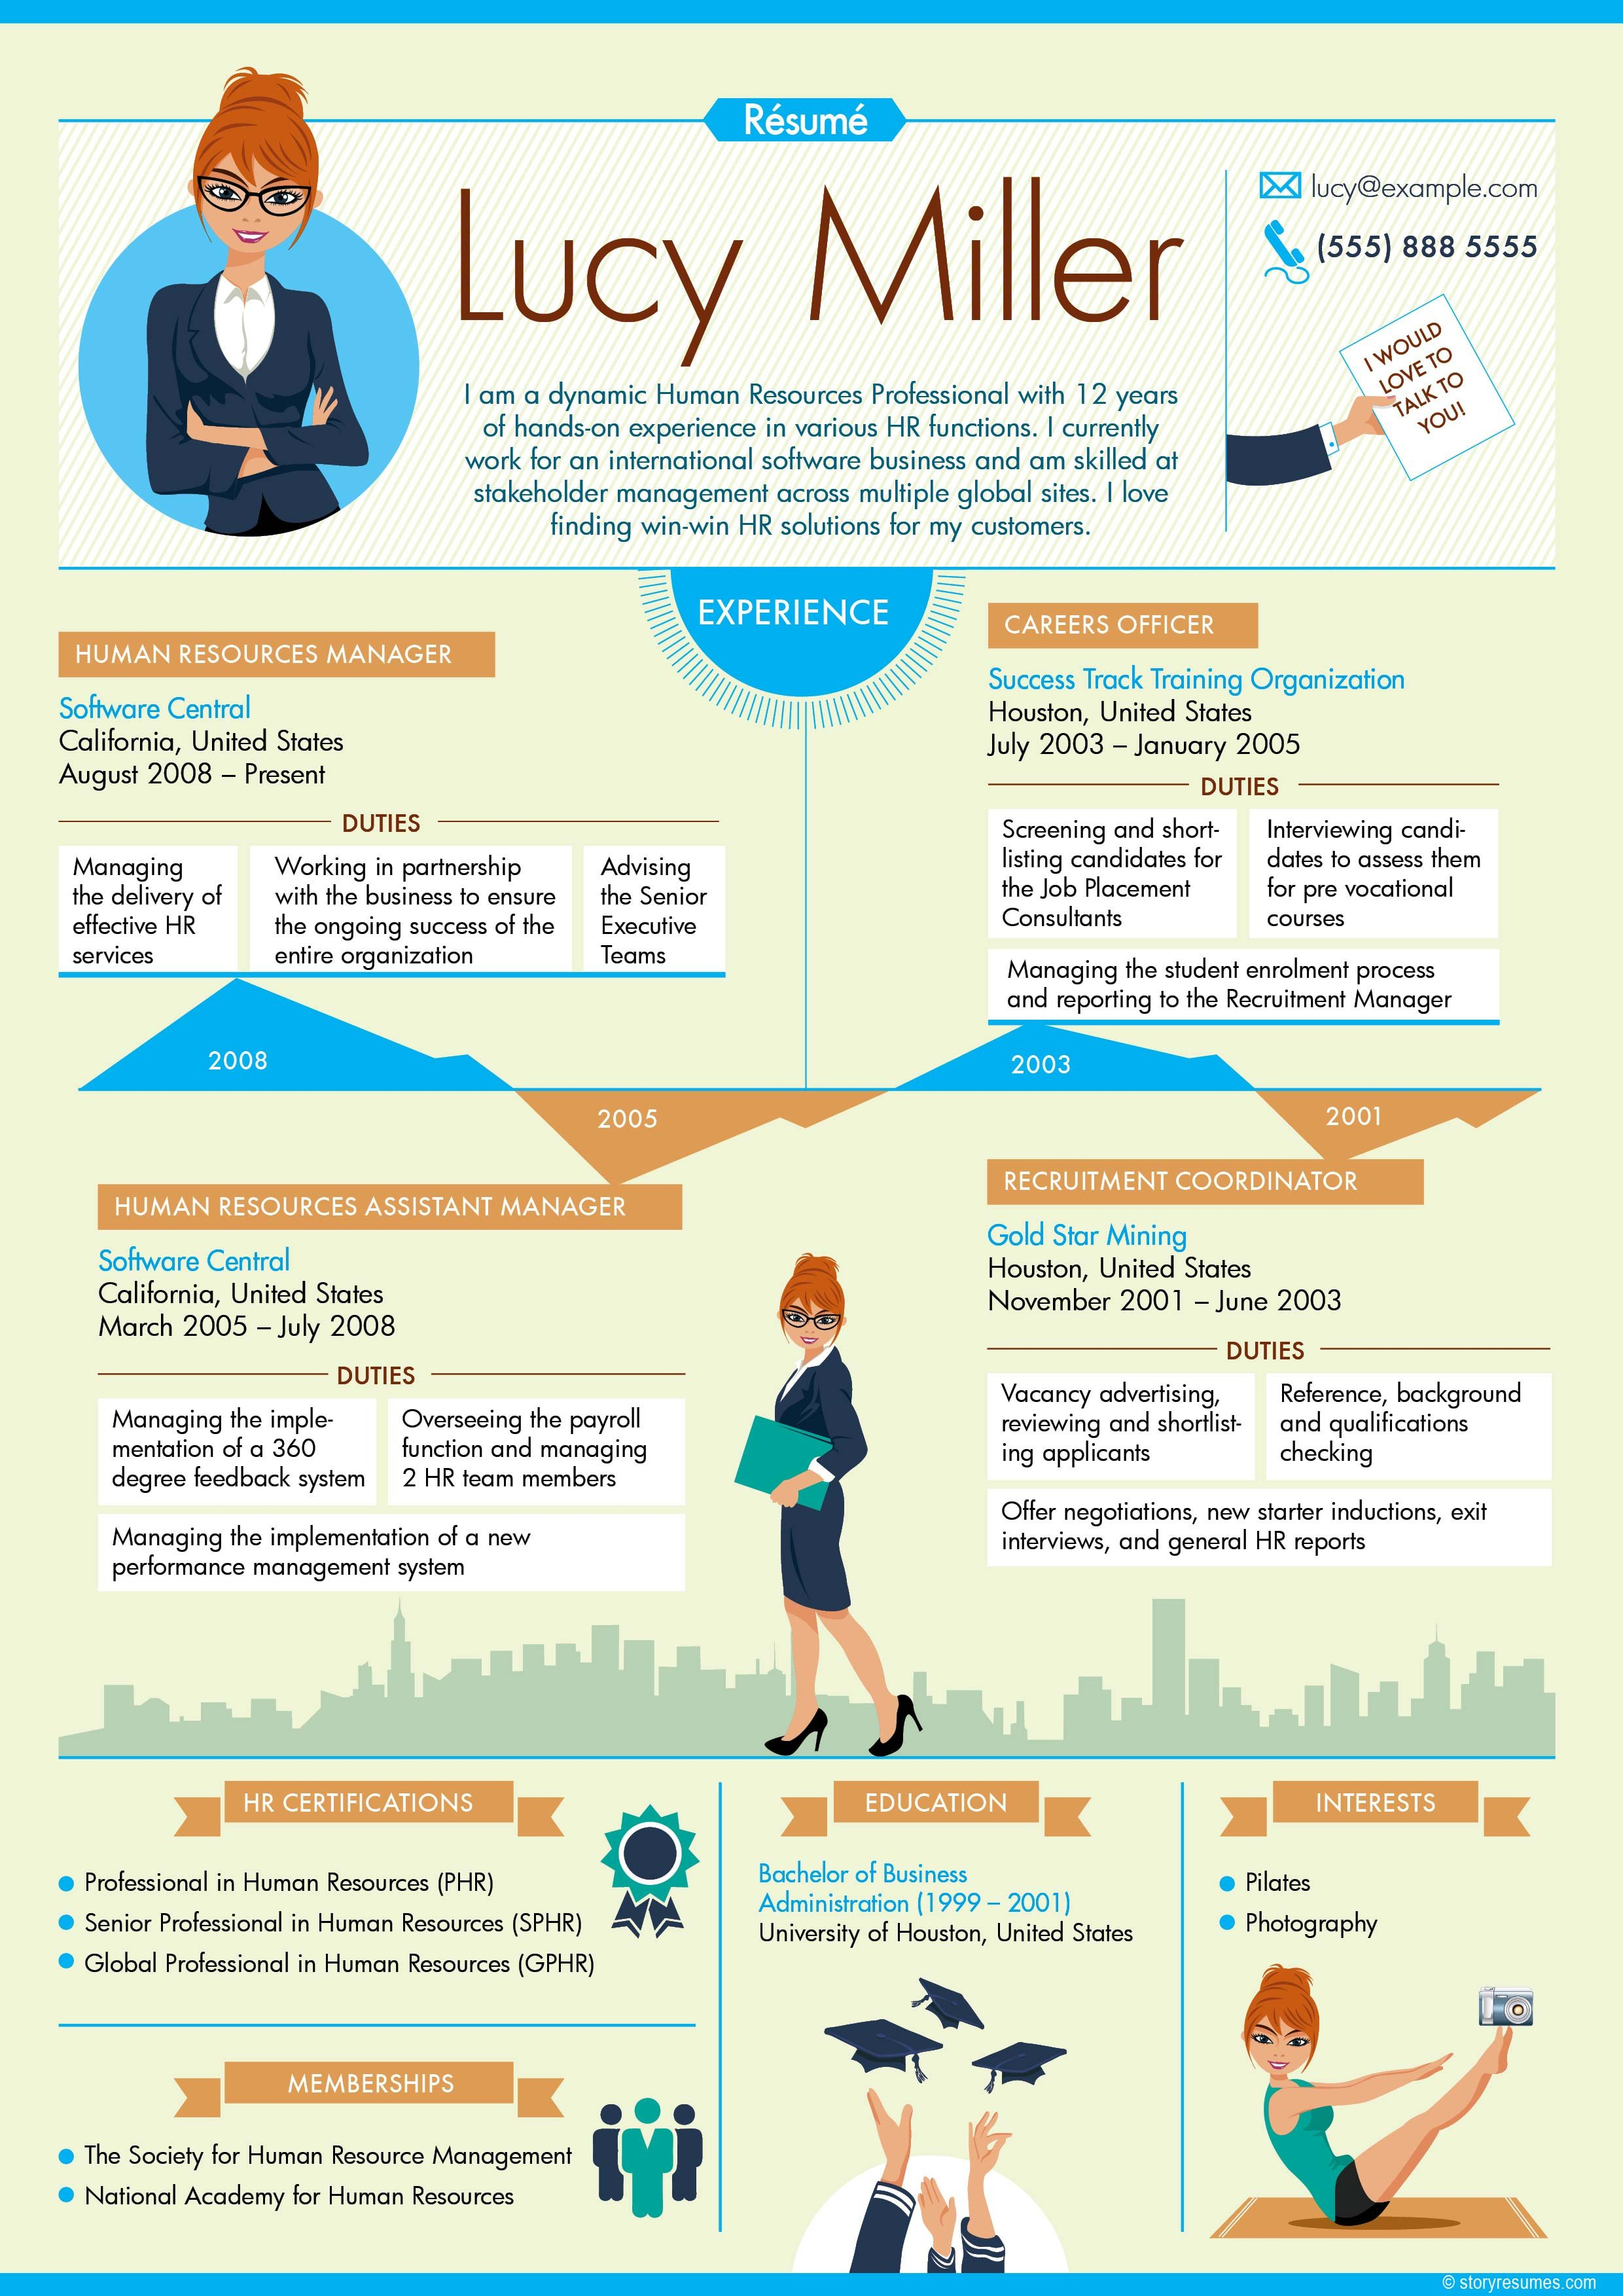 Infographic cv Lucy Miller